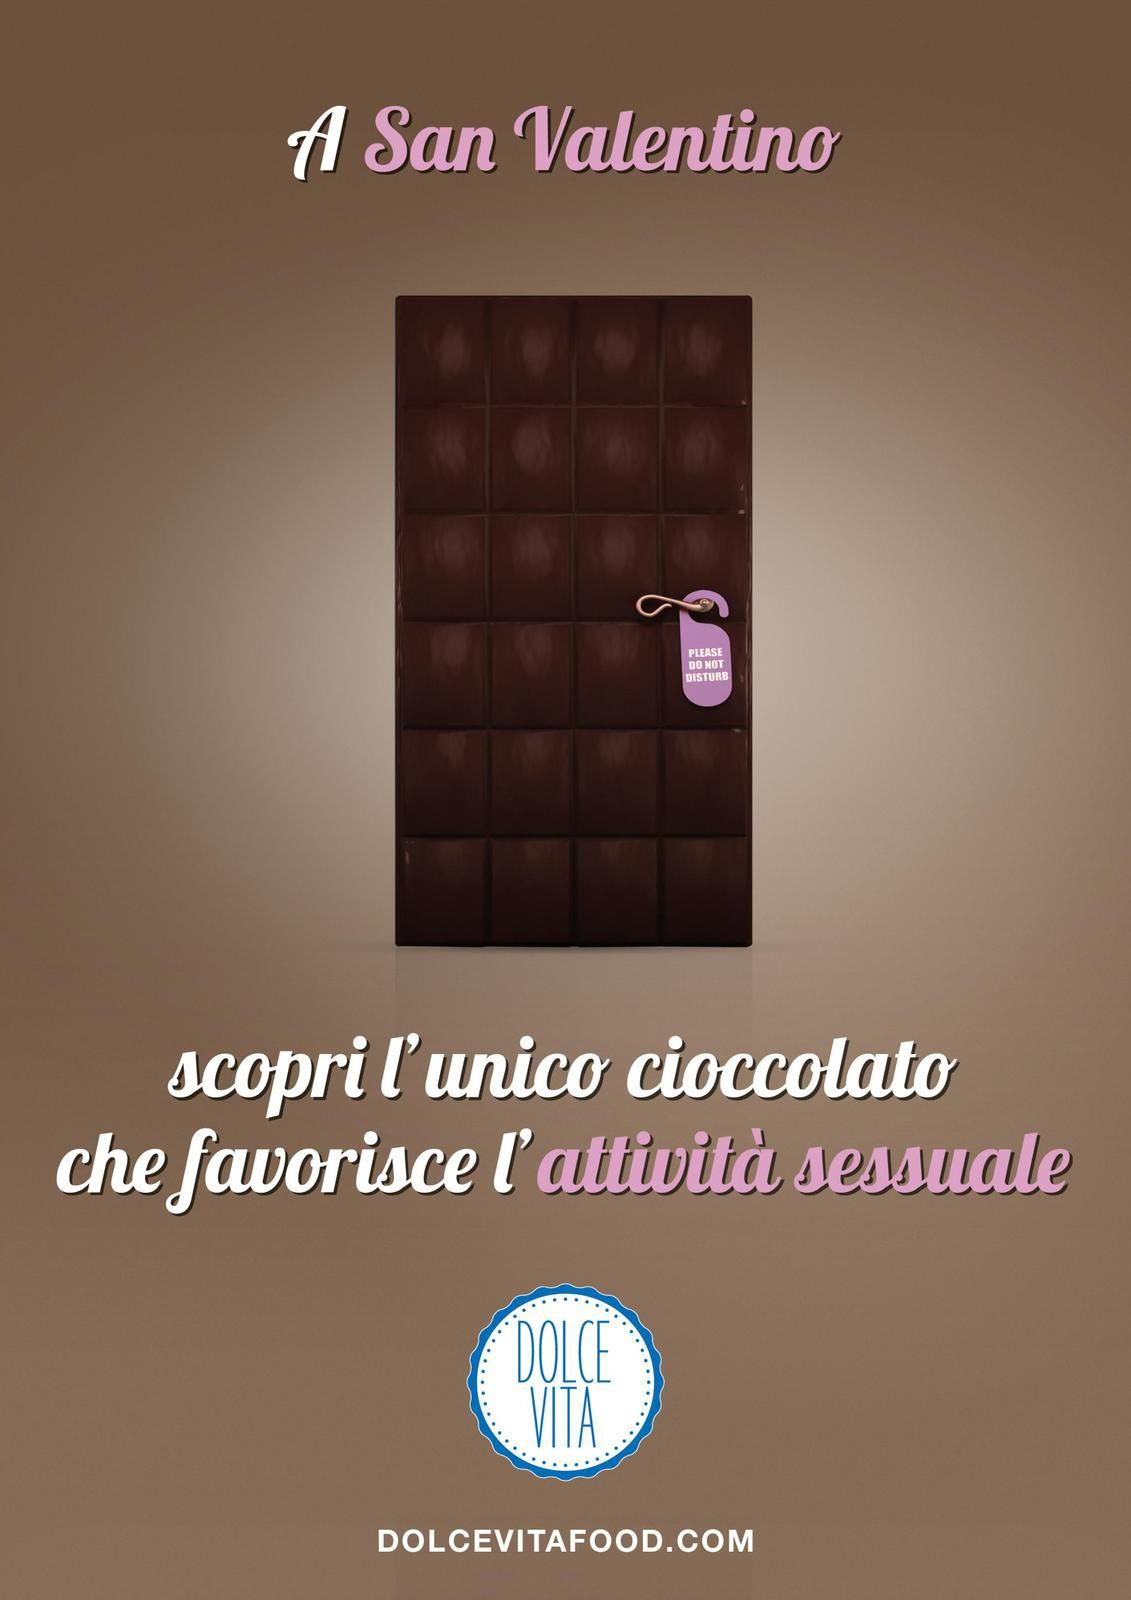 """This St.Valentine's day, discover the first chocolate that helps your sexual activity"" - Dolcevita (chocolat) I Agence : Invasione Creativa, Milan, Italie (janvier 2017)"